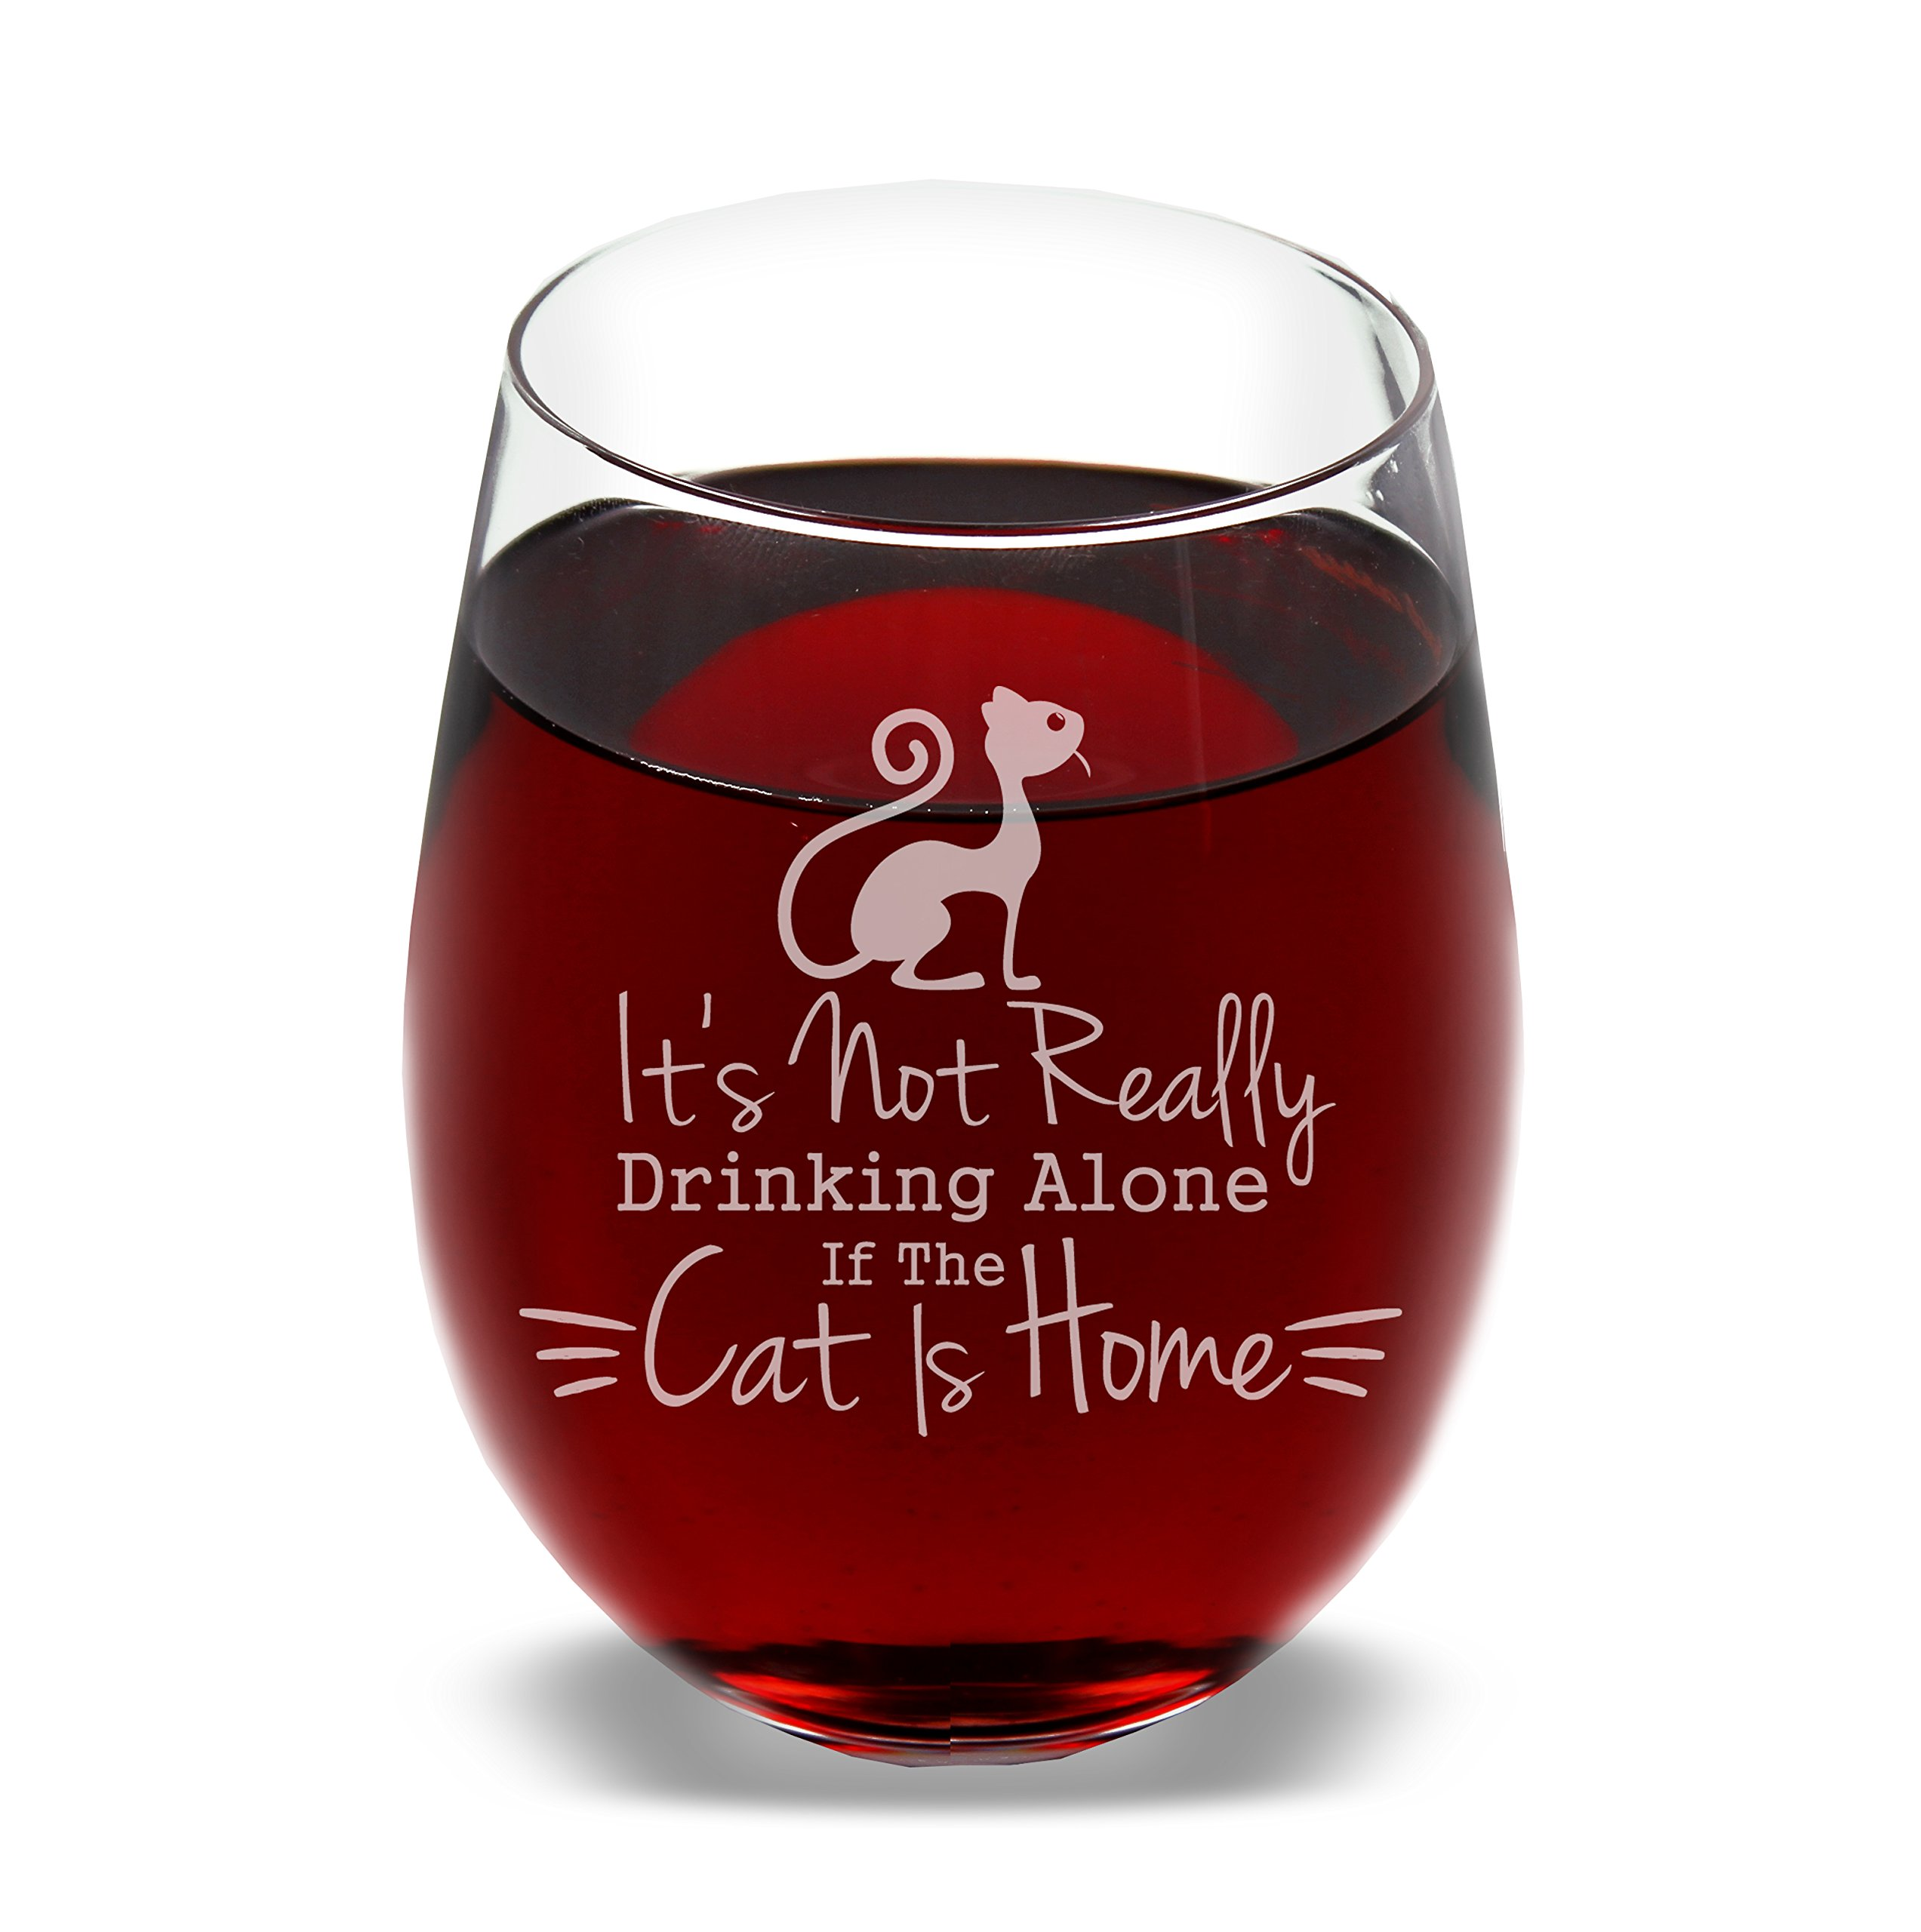 It's Not Really Drinking Alone If The Cat Is Home - Funny Novelty Wine Glass with Coaster - Great Present for Girlfriend Wife Mom on Birthday Mothers Day - 17 oz Stemless - With Gift Box